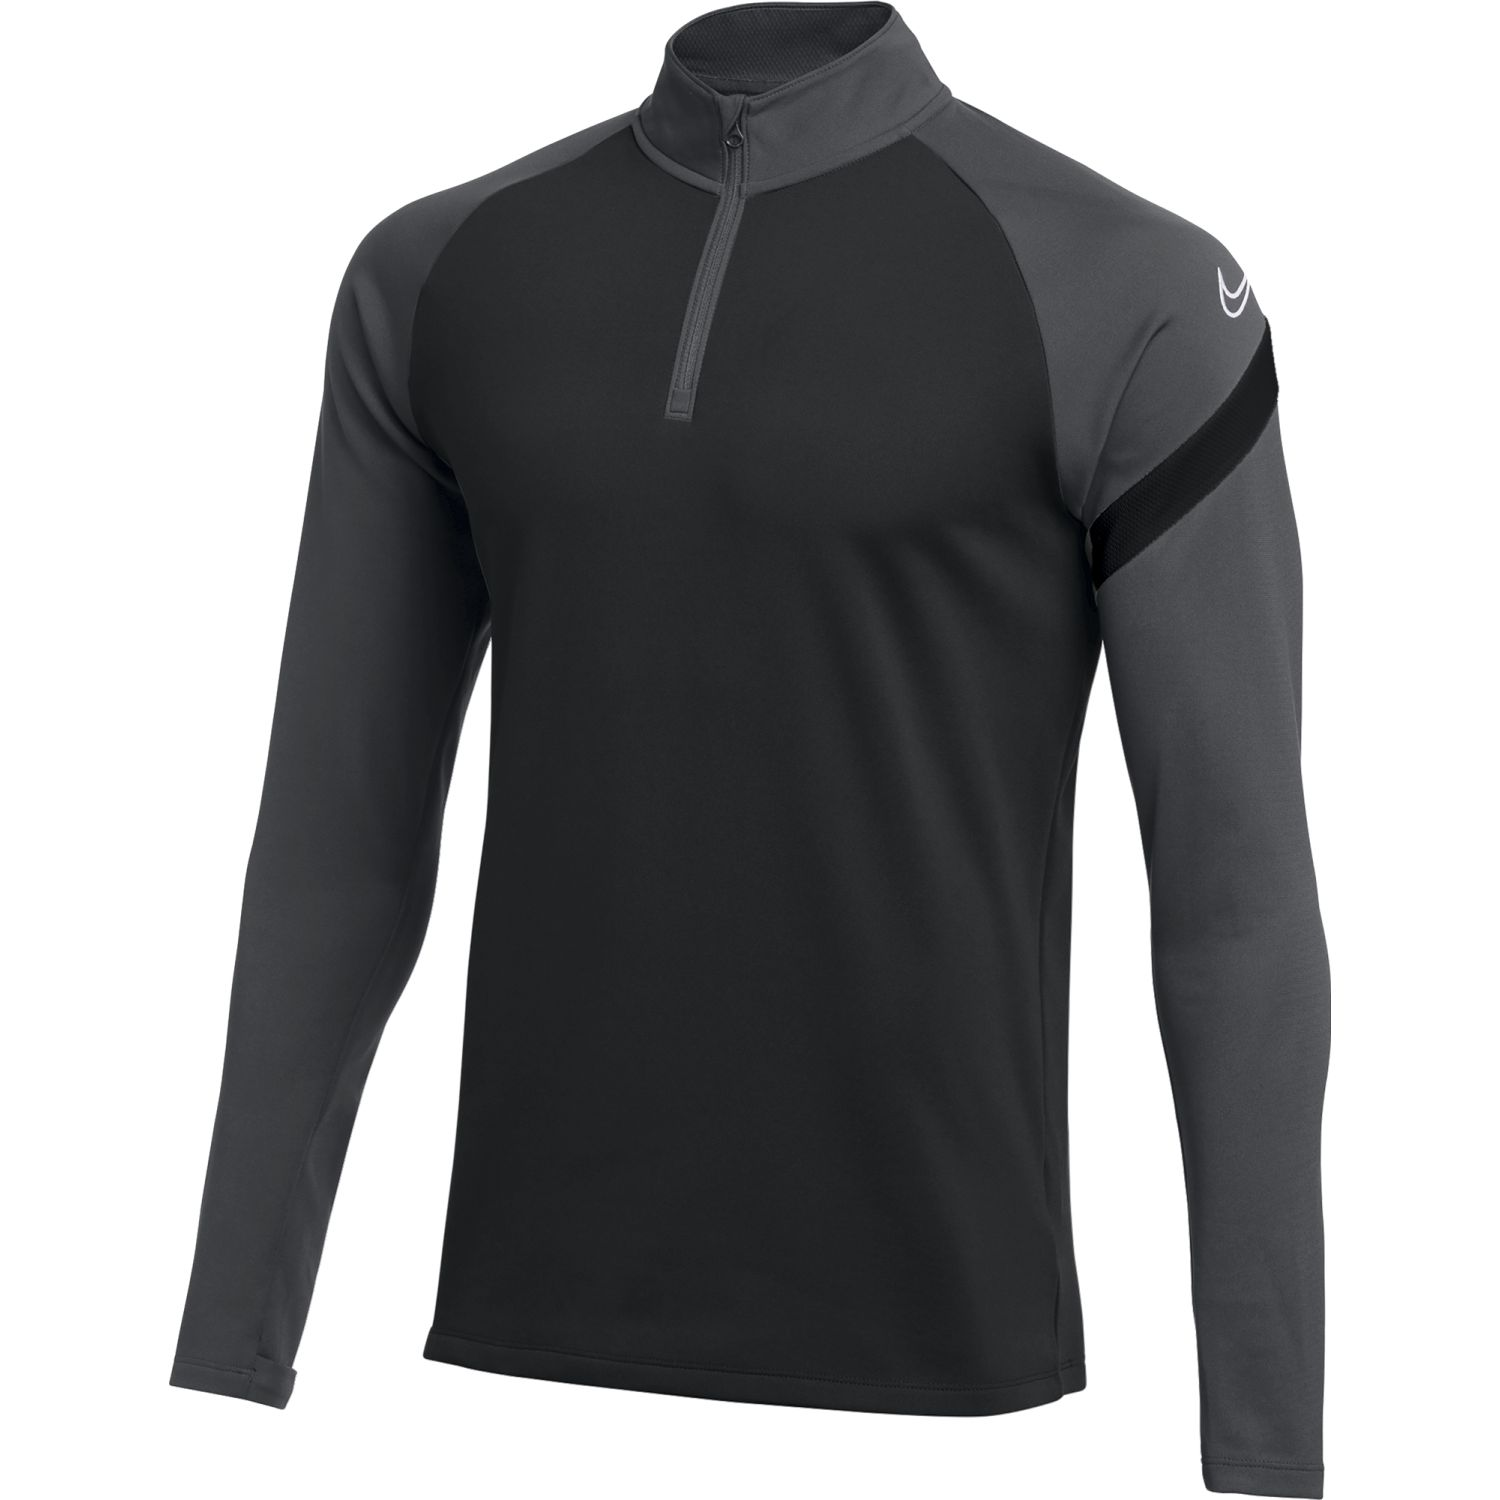 Nike M NK DRY ACD20 DRIL TOP NEGRO / GRIS Polos